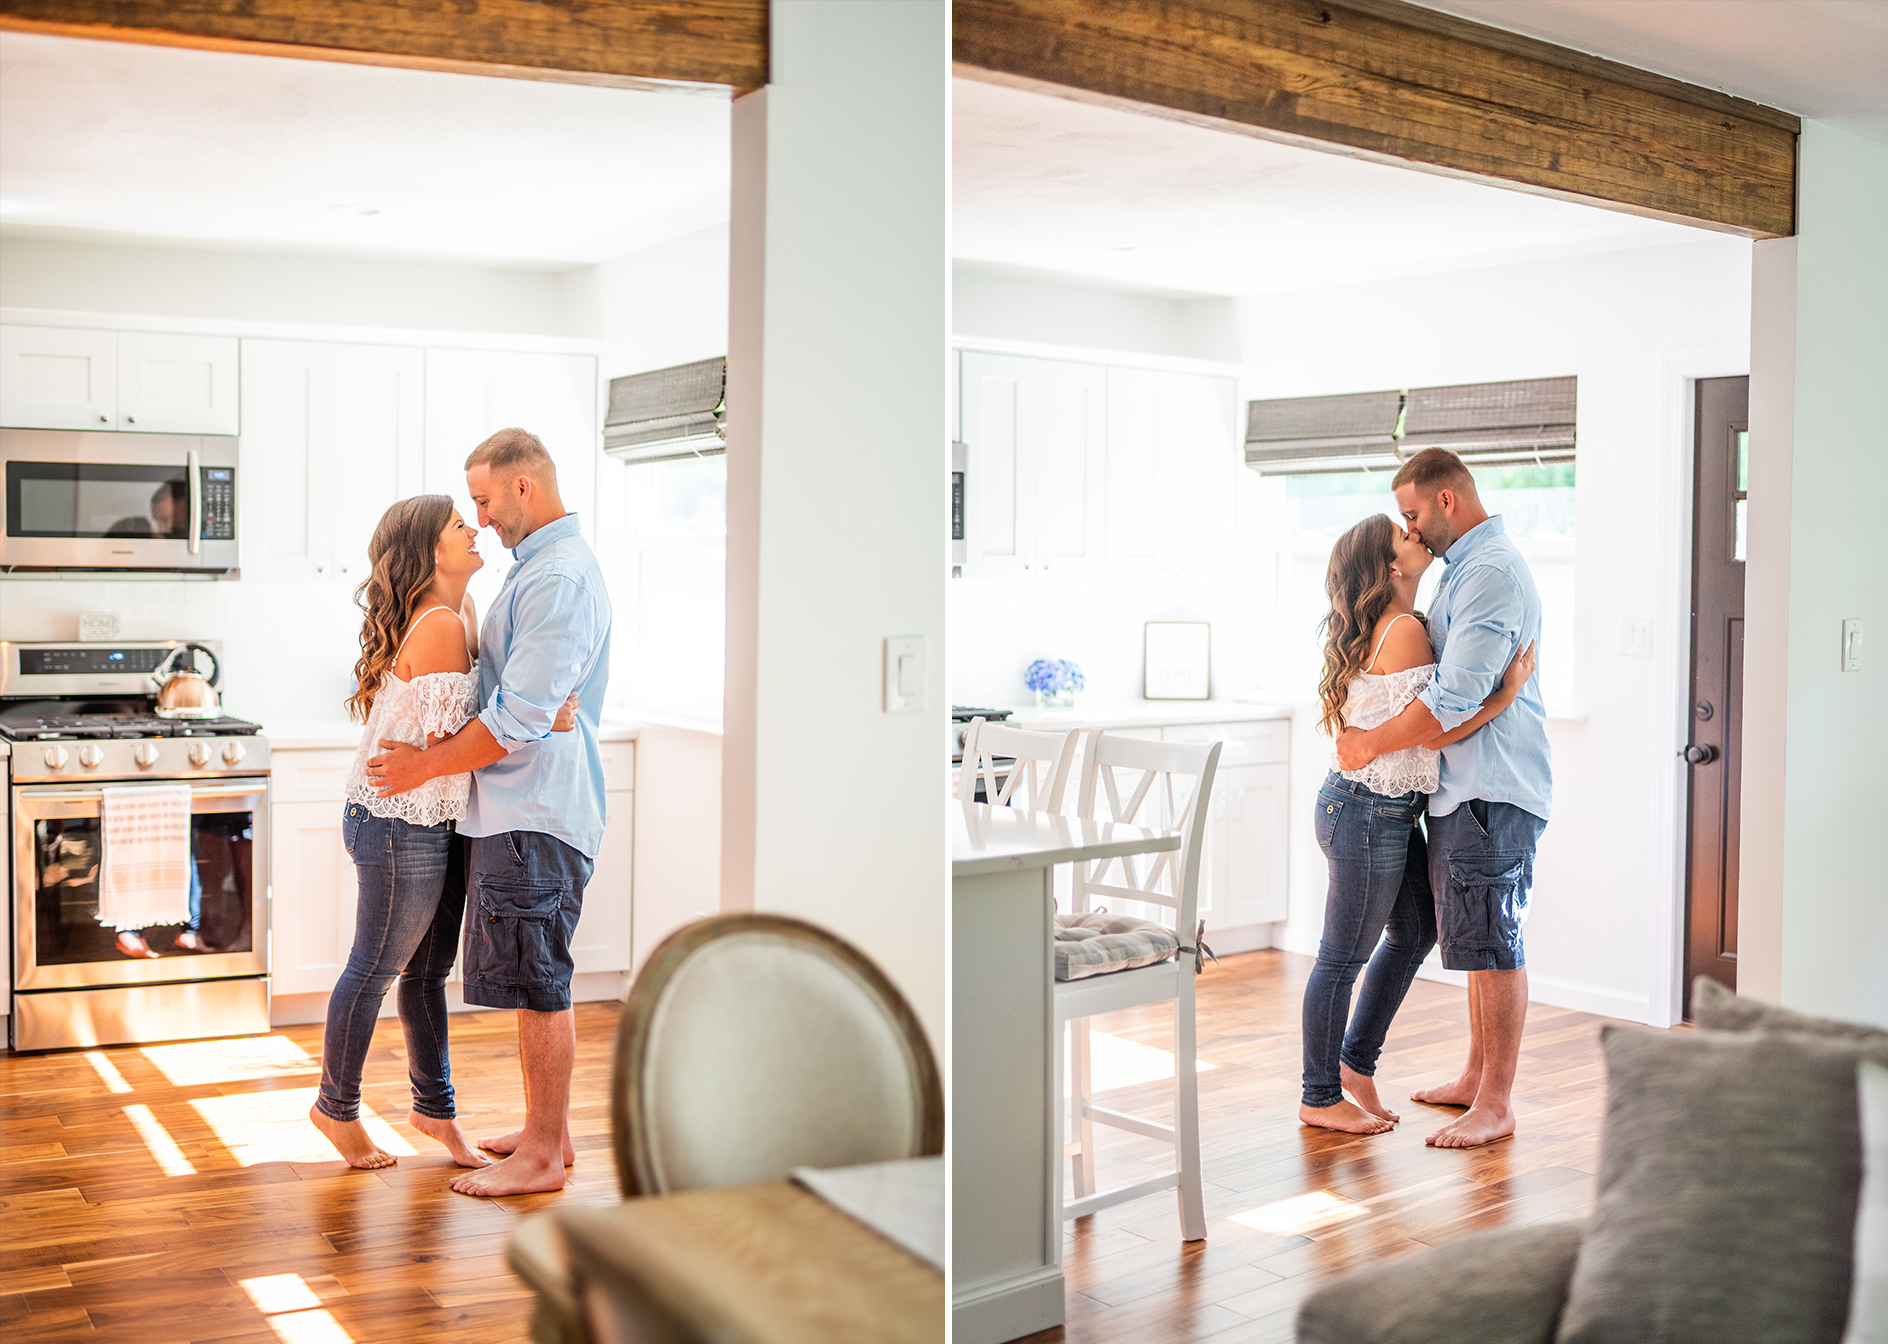 Calverton Engagement Shoot | Engagement Shoot at Home | Rustic Farrm Kitchen Engagement Shoot | North Forrk Wedding Photographer3